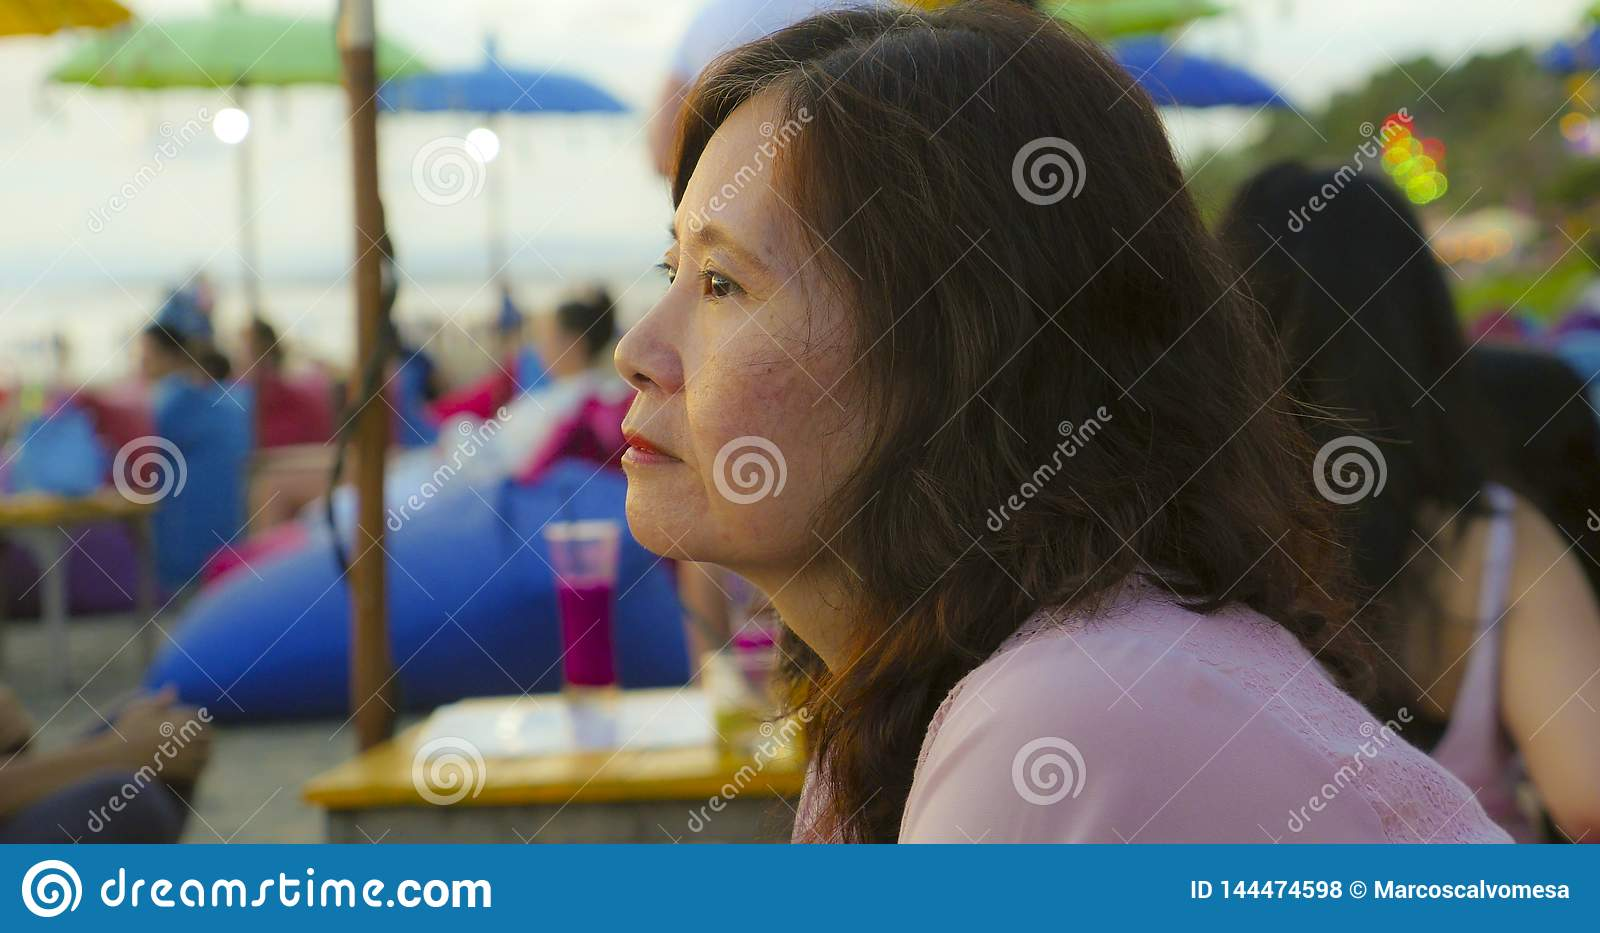 Senior mature Asian Chinese woman in her 50s or 60s looking relaxed and thoughtful sitting at tropical beach resort in Summer